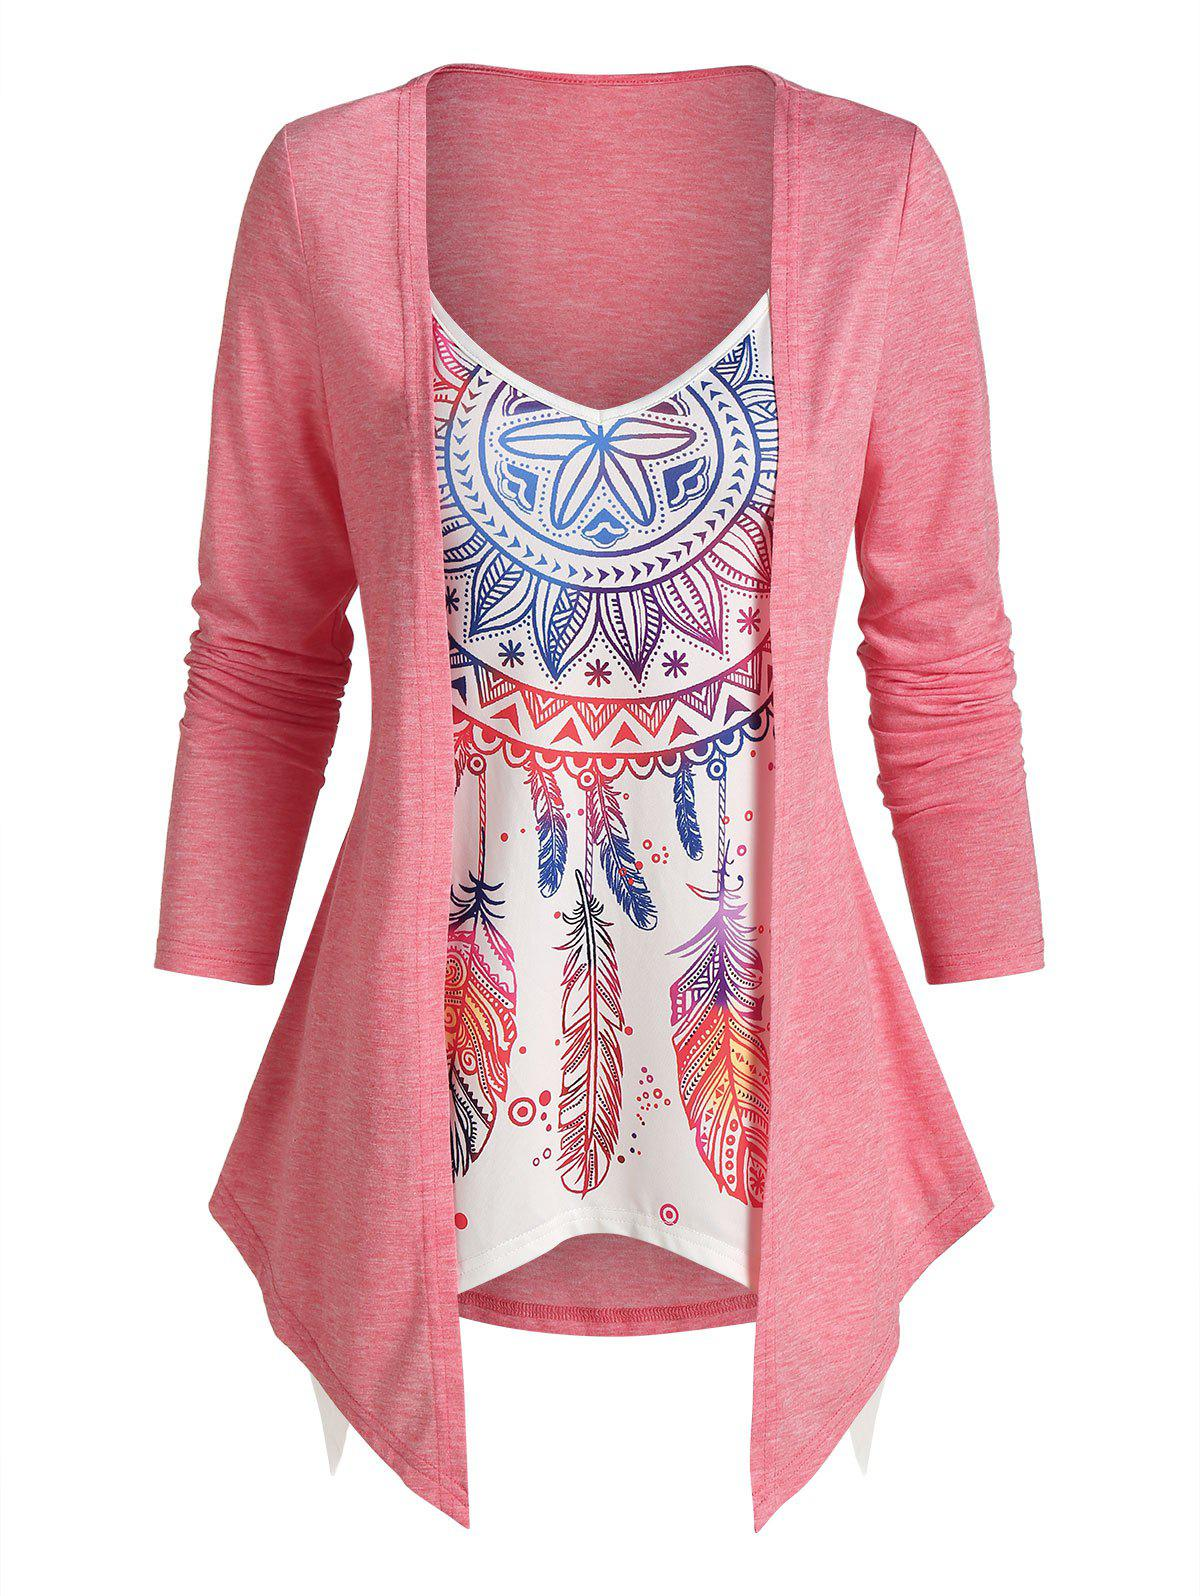 2 In 1 Dream Catcher Printed Top - PINK 3XL